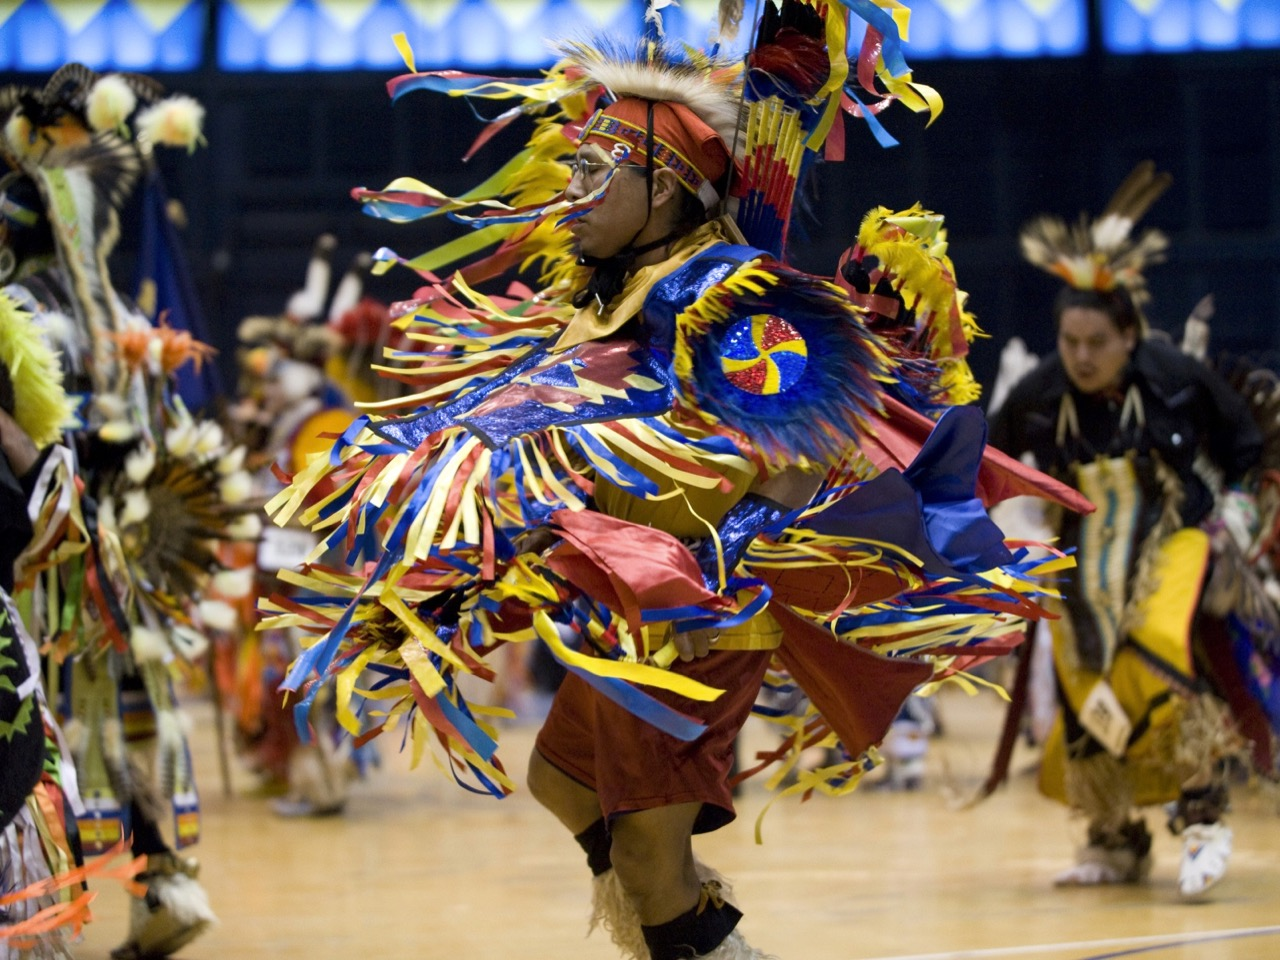 MSU News: Powwow dedicated to missing and murdered indigenous women and girls